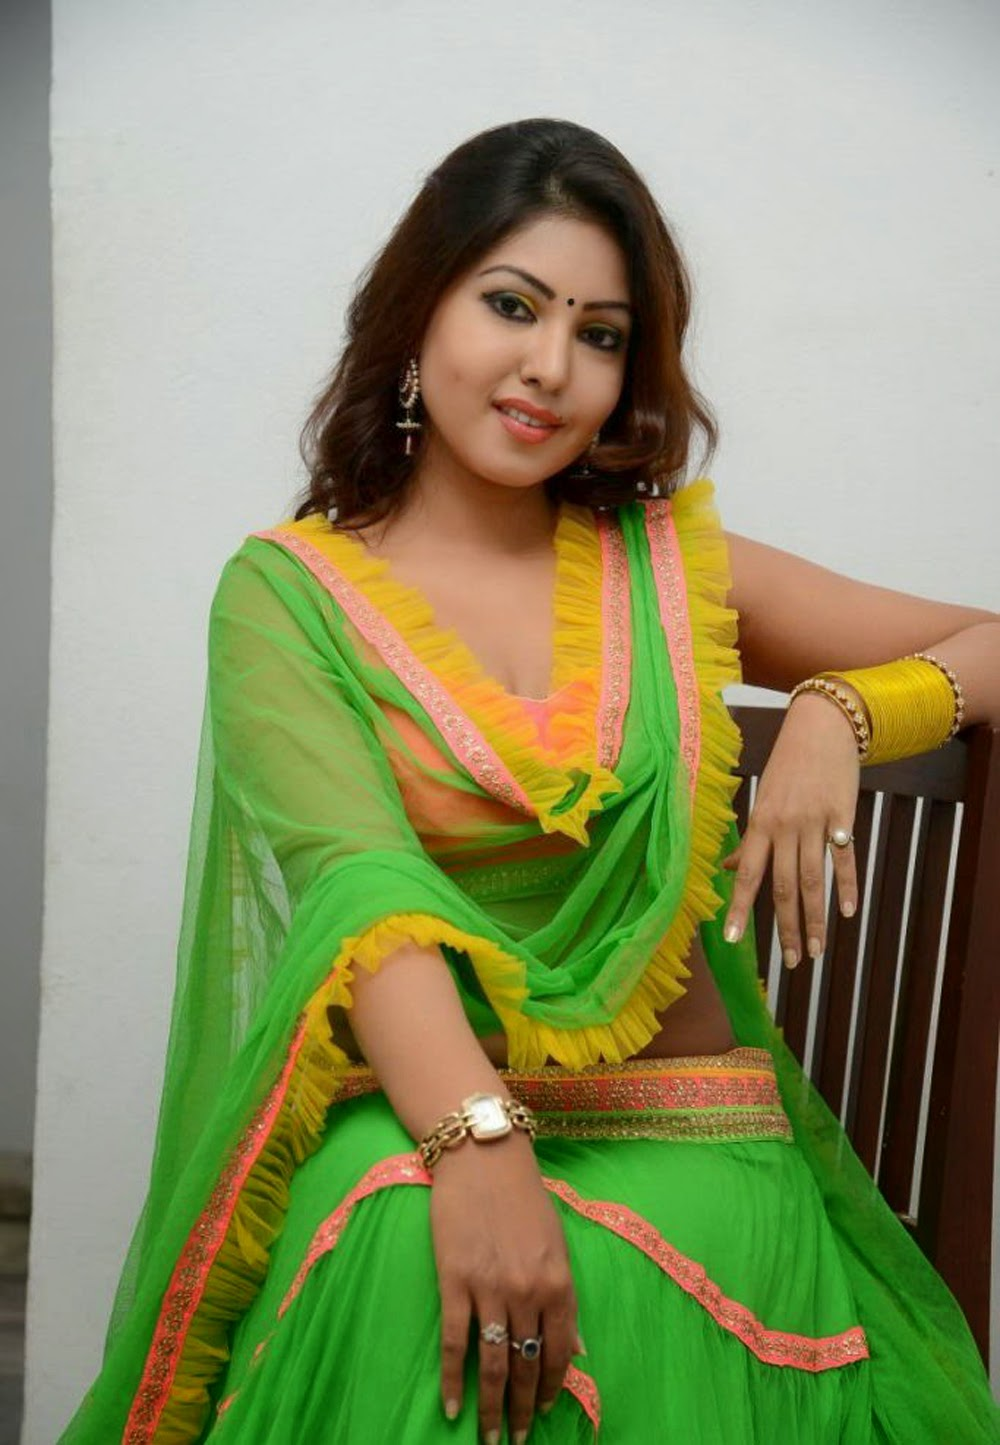 Komal Jha Green Ghaghra choli hot wallpapers